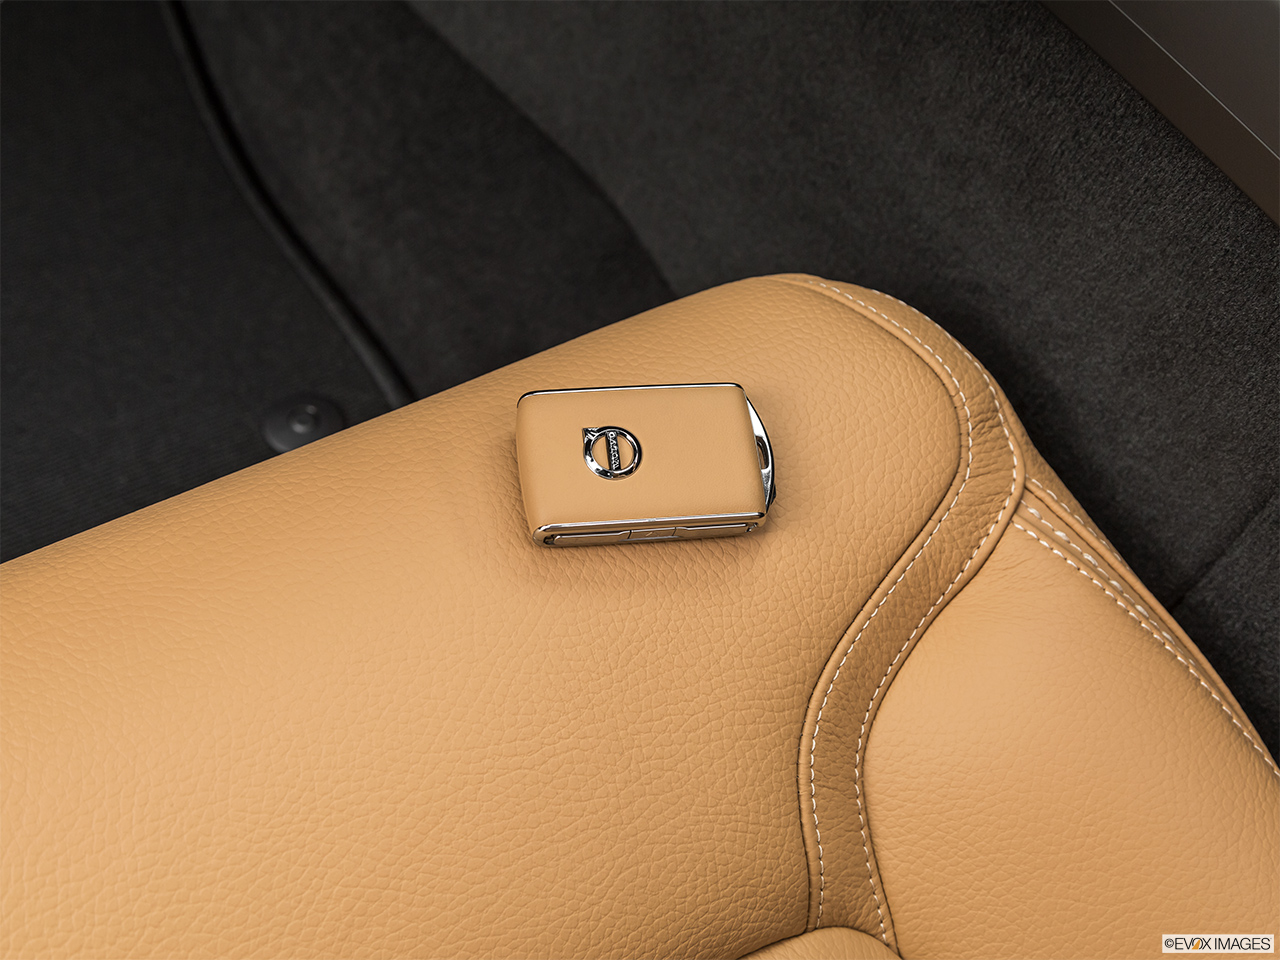 2020 Volvo V60 Cross Country T5 AWD Key fob on driver's seat.